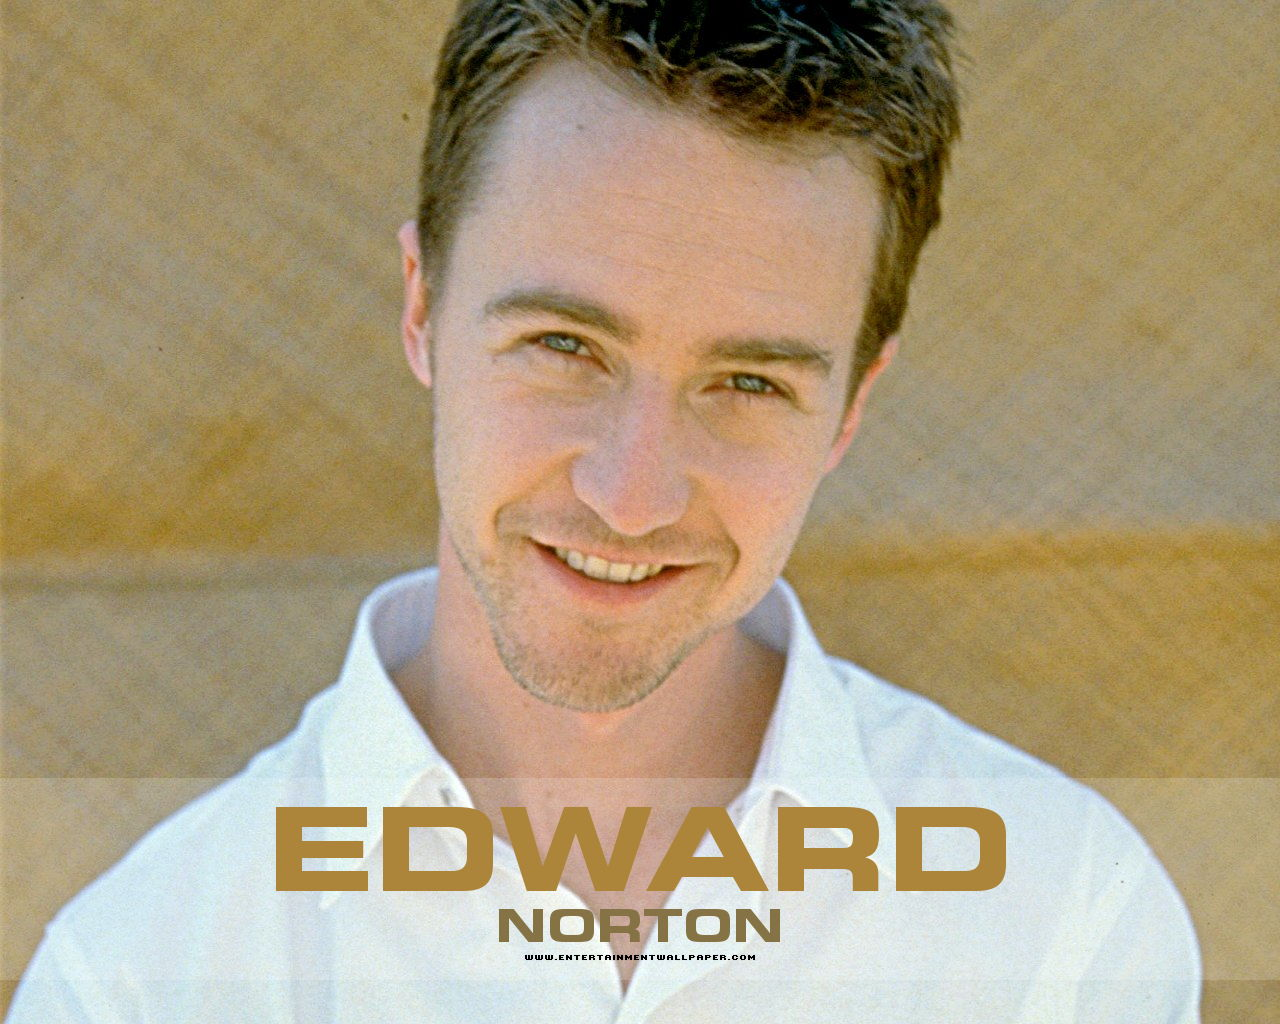 Edward Norton wallpaper 1280x1024 49315 1280x1024